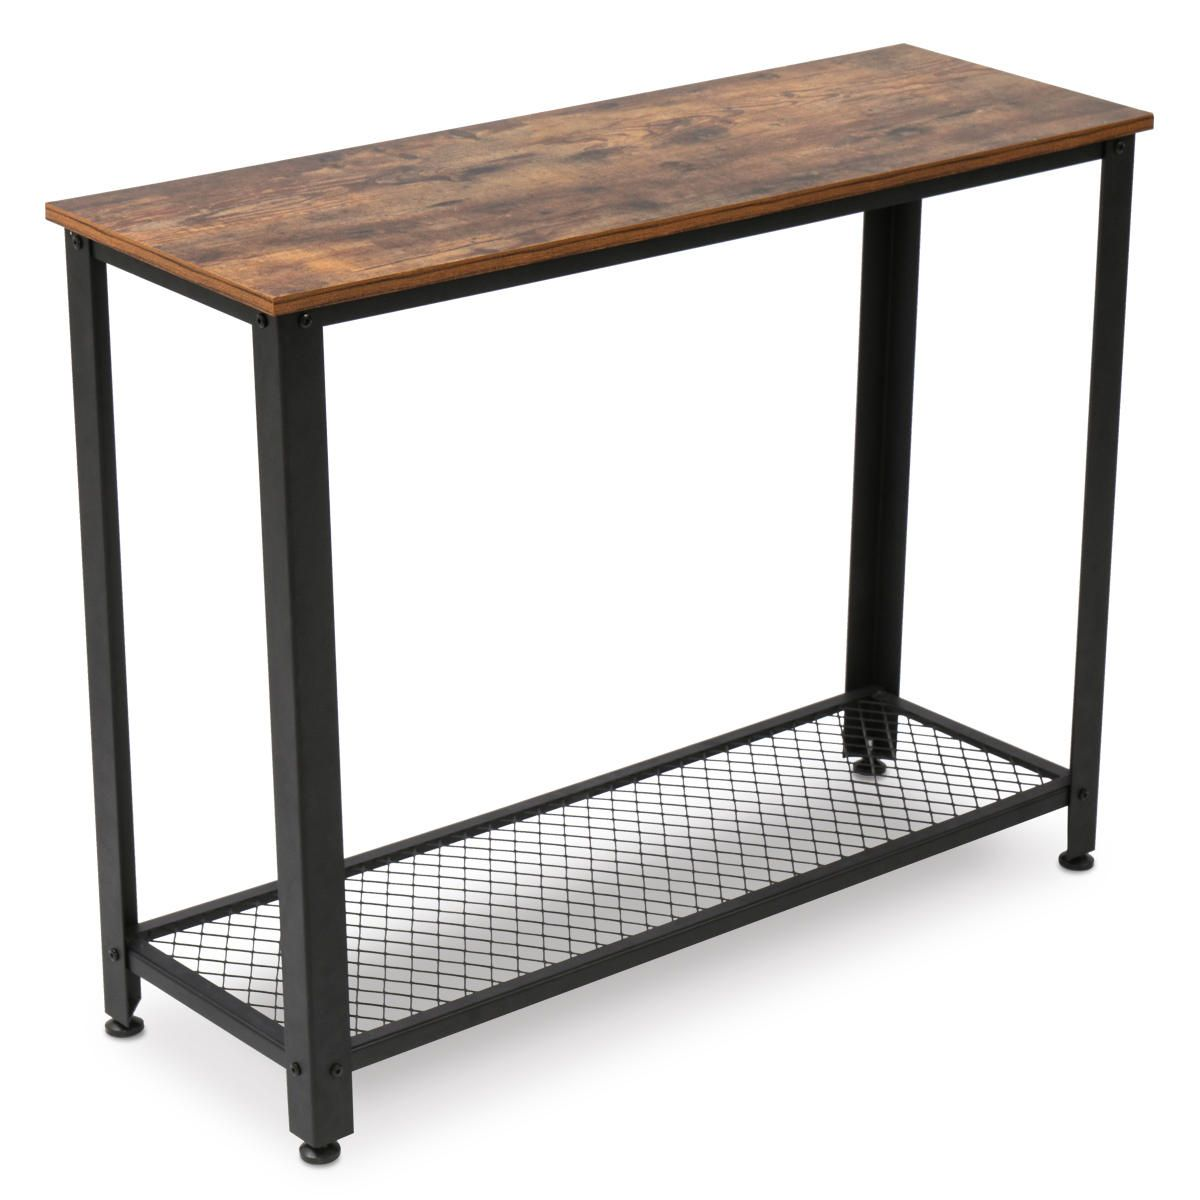 2 Tier Vintage Coffee Table Laptop Desk Sofa Table with Sturdy Storage Shelf Bookshelf Easy Assembly for Office Home Living Room Bedroom